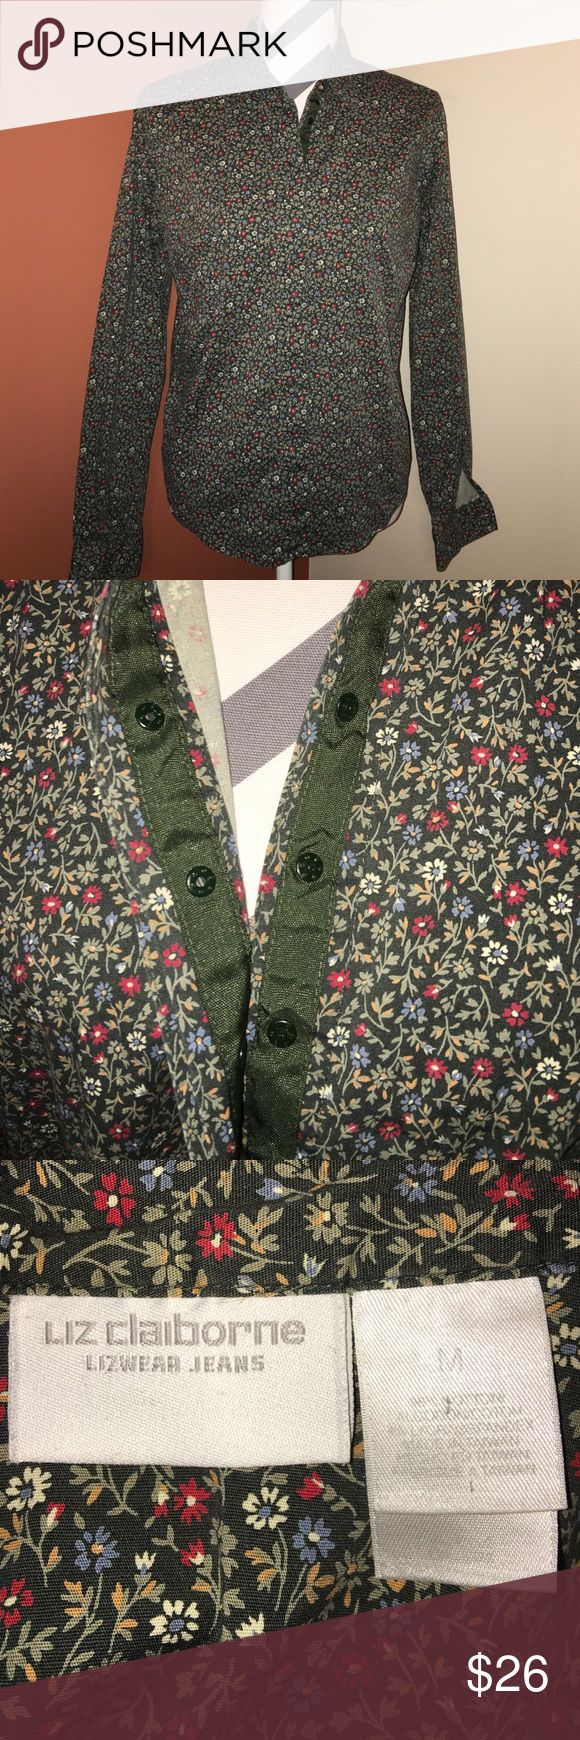 Liz Claiborne Blouse Super cute fun poppy print fitted top. Has snaps instead of buttons, fun.  Main color is a dark olive green. With yellow red and blue poppy flowers 🌺. In excellent condition no rips tears or stains. Liz Claiborne Tops Button Down Shirts